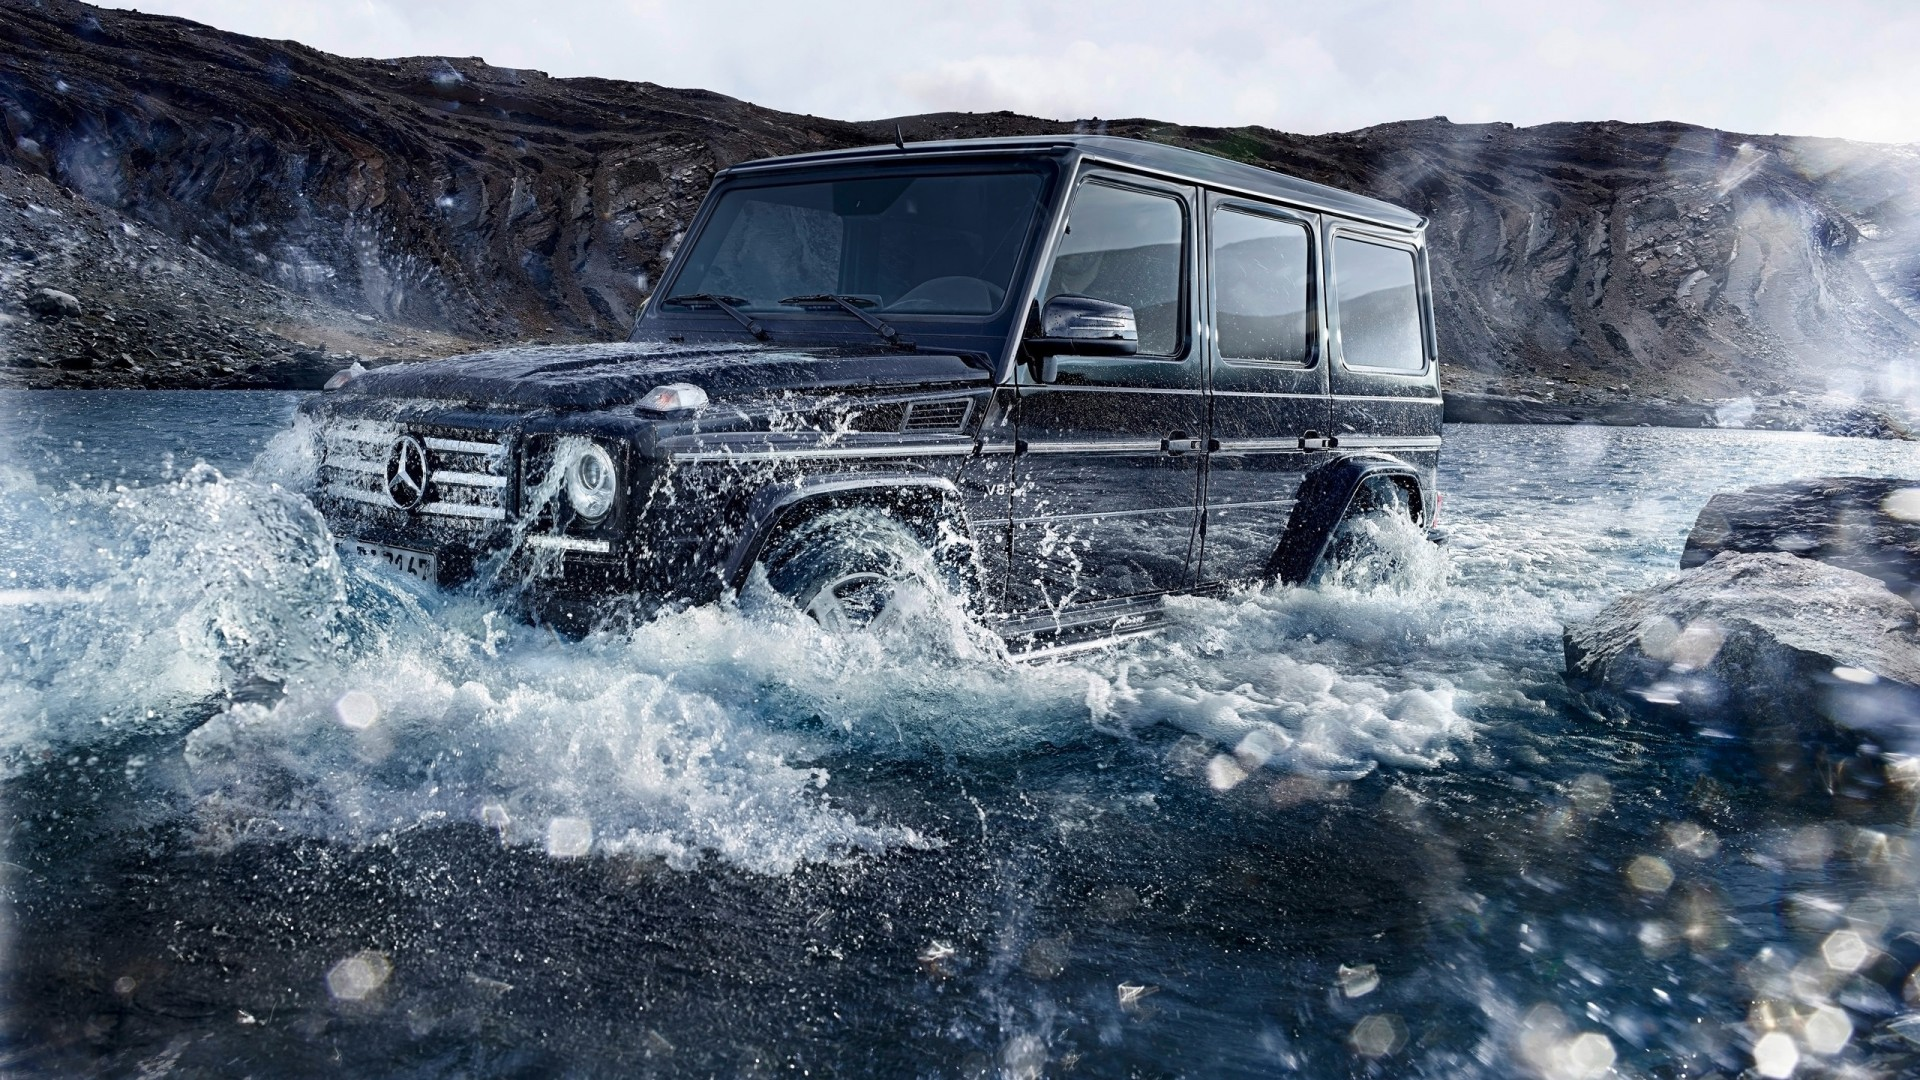 2016 Mercedes Benz G Class Off Road Wallpaper Hd Car Wallpapers